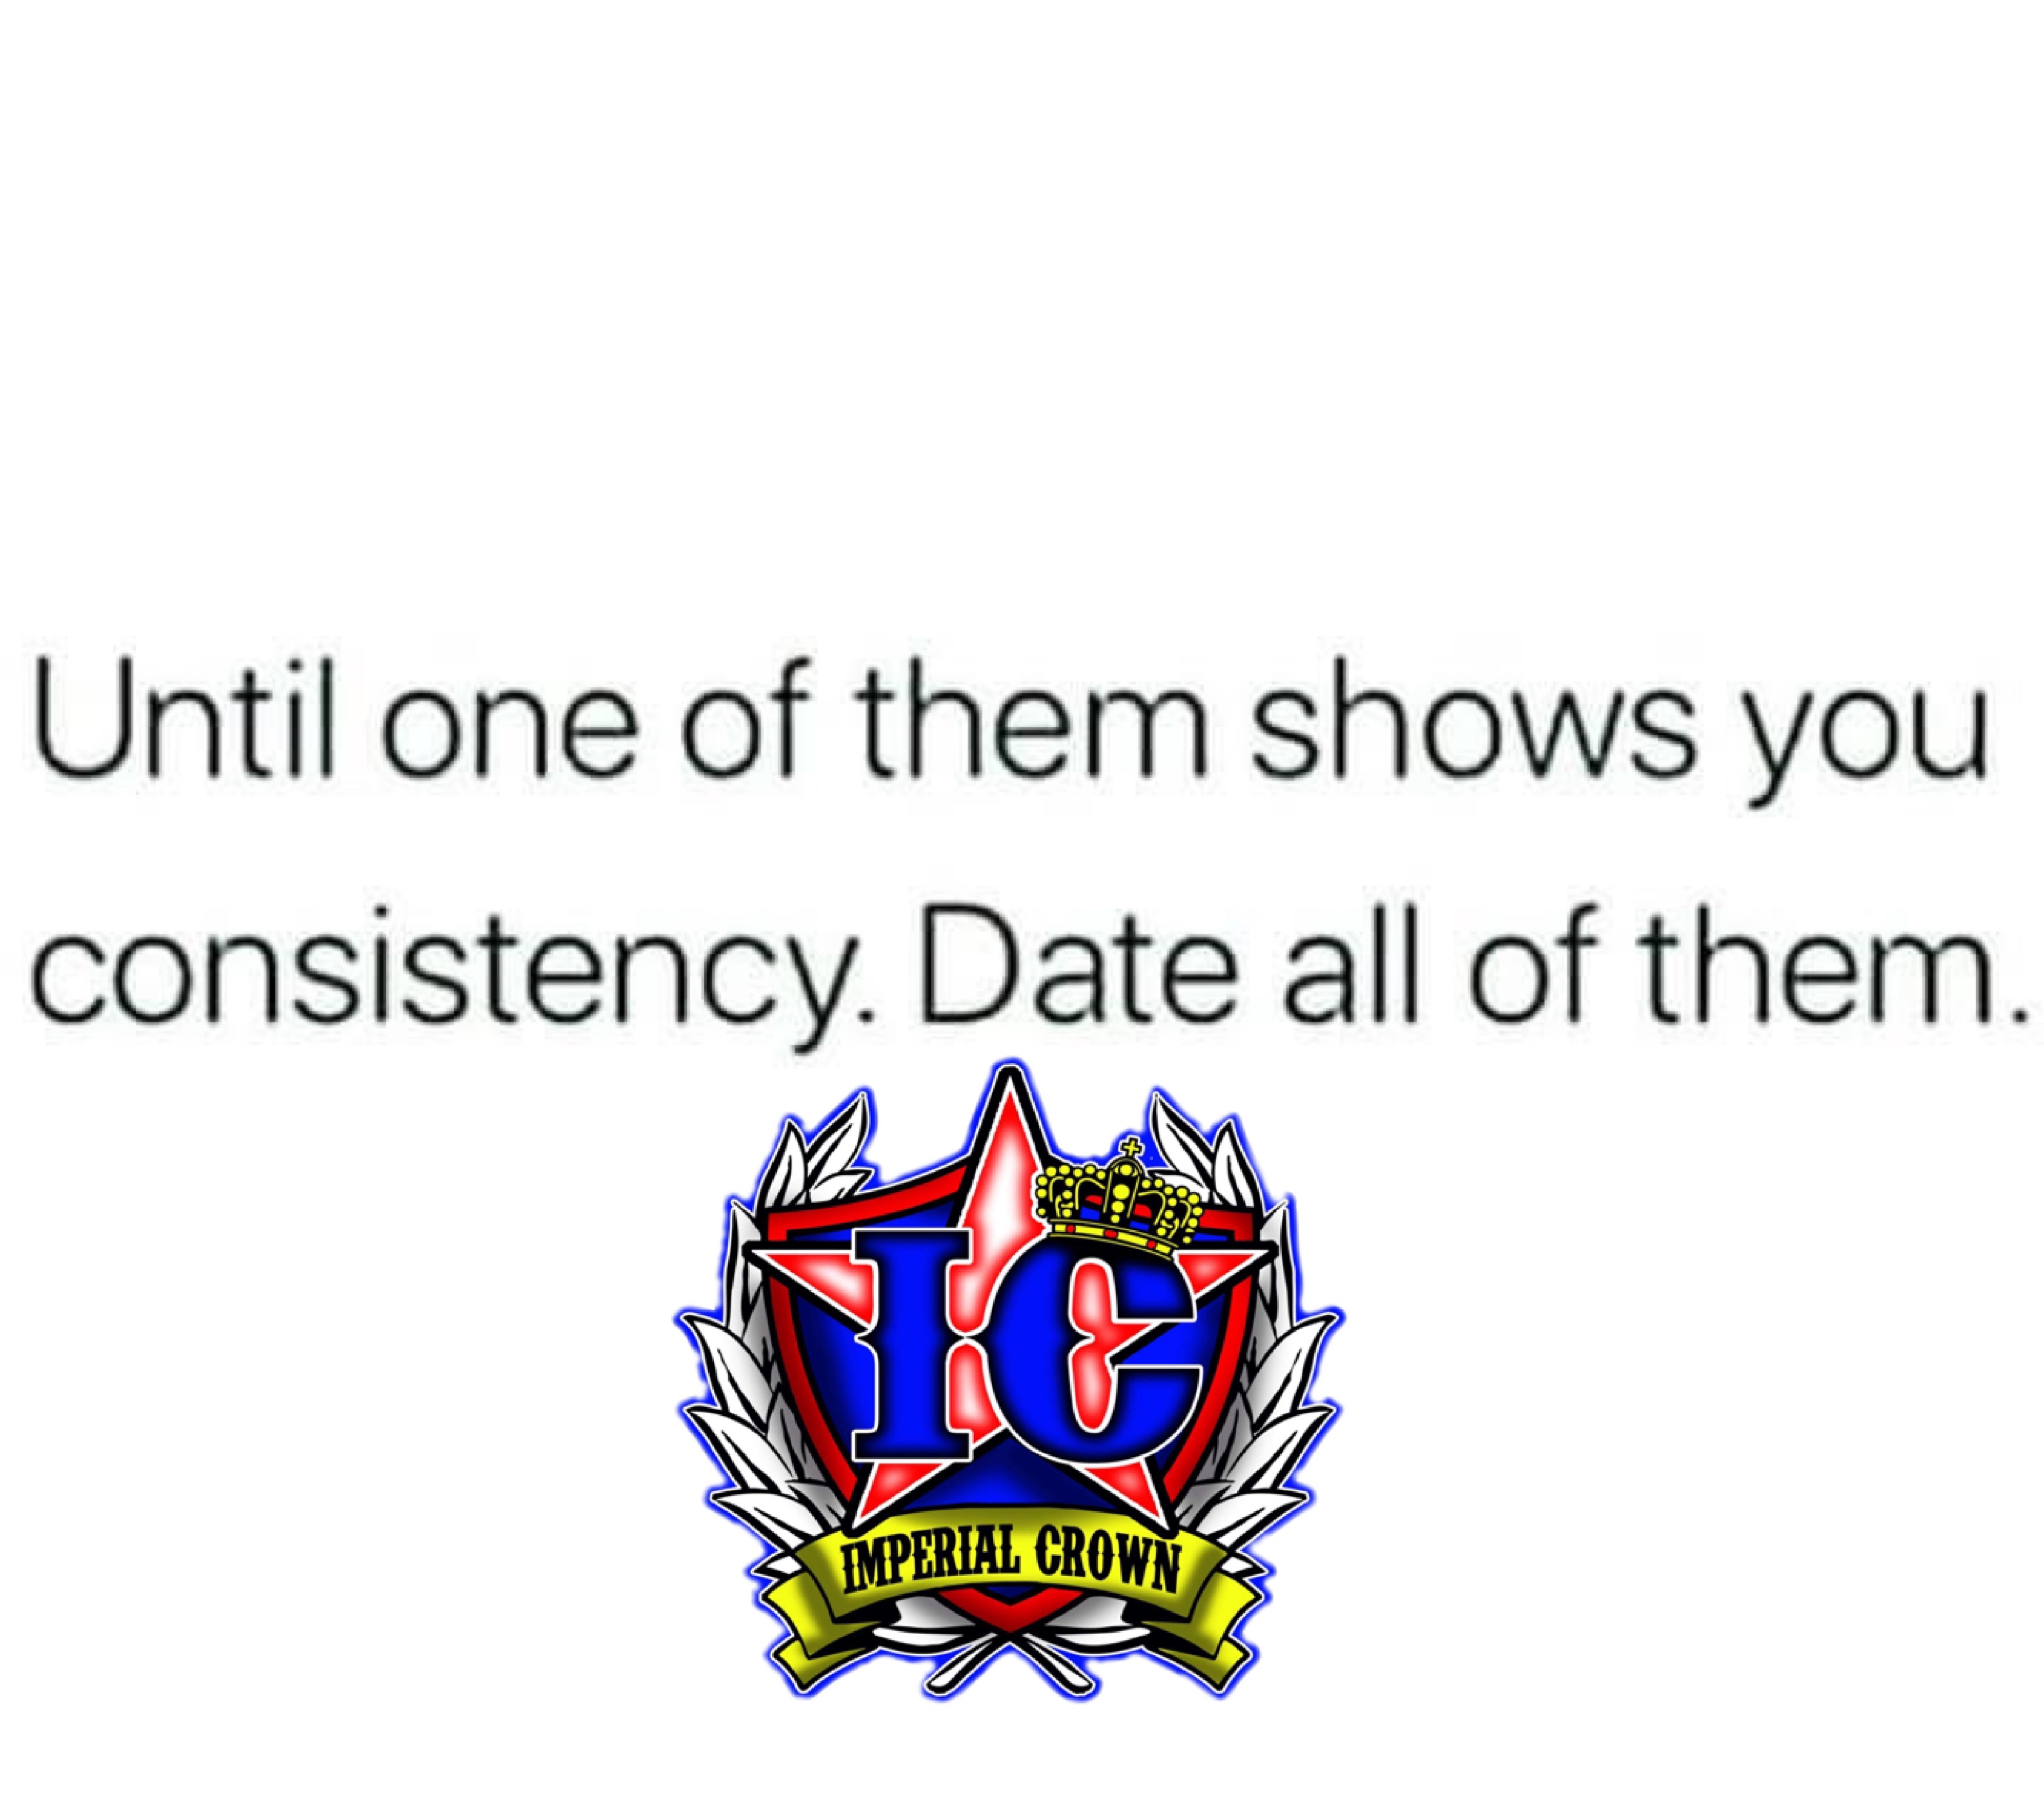 Until one of them shows you consistency date all of them